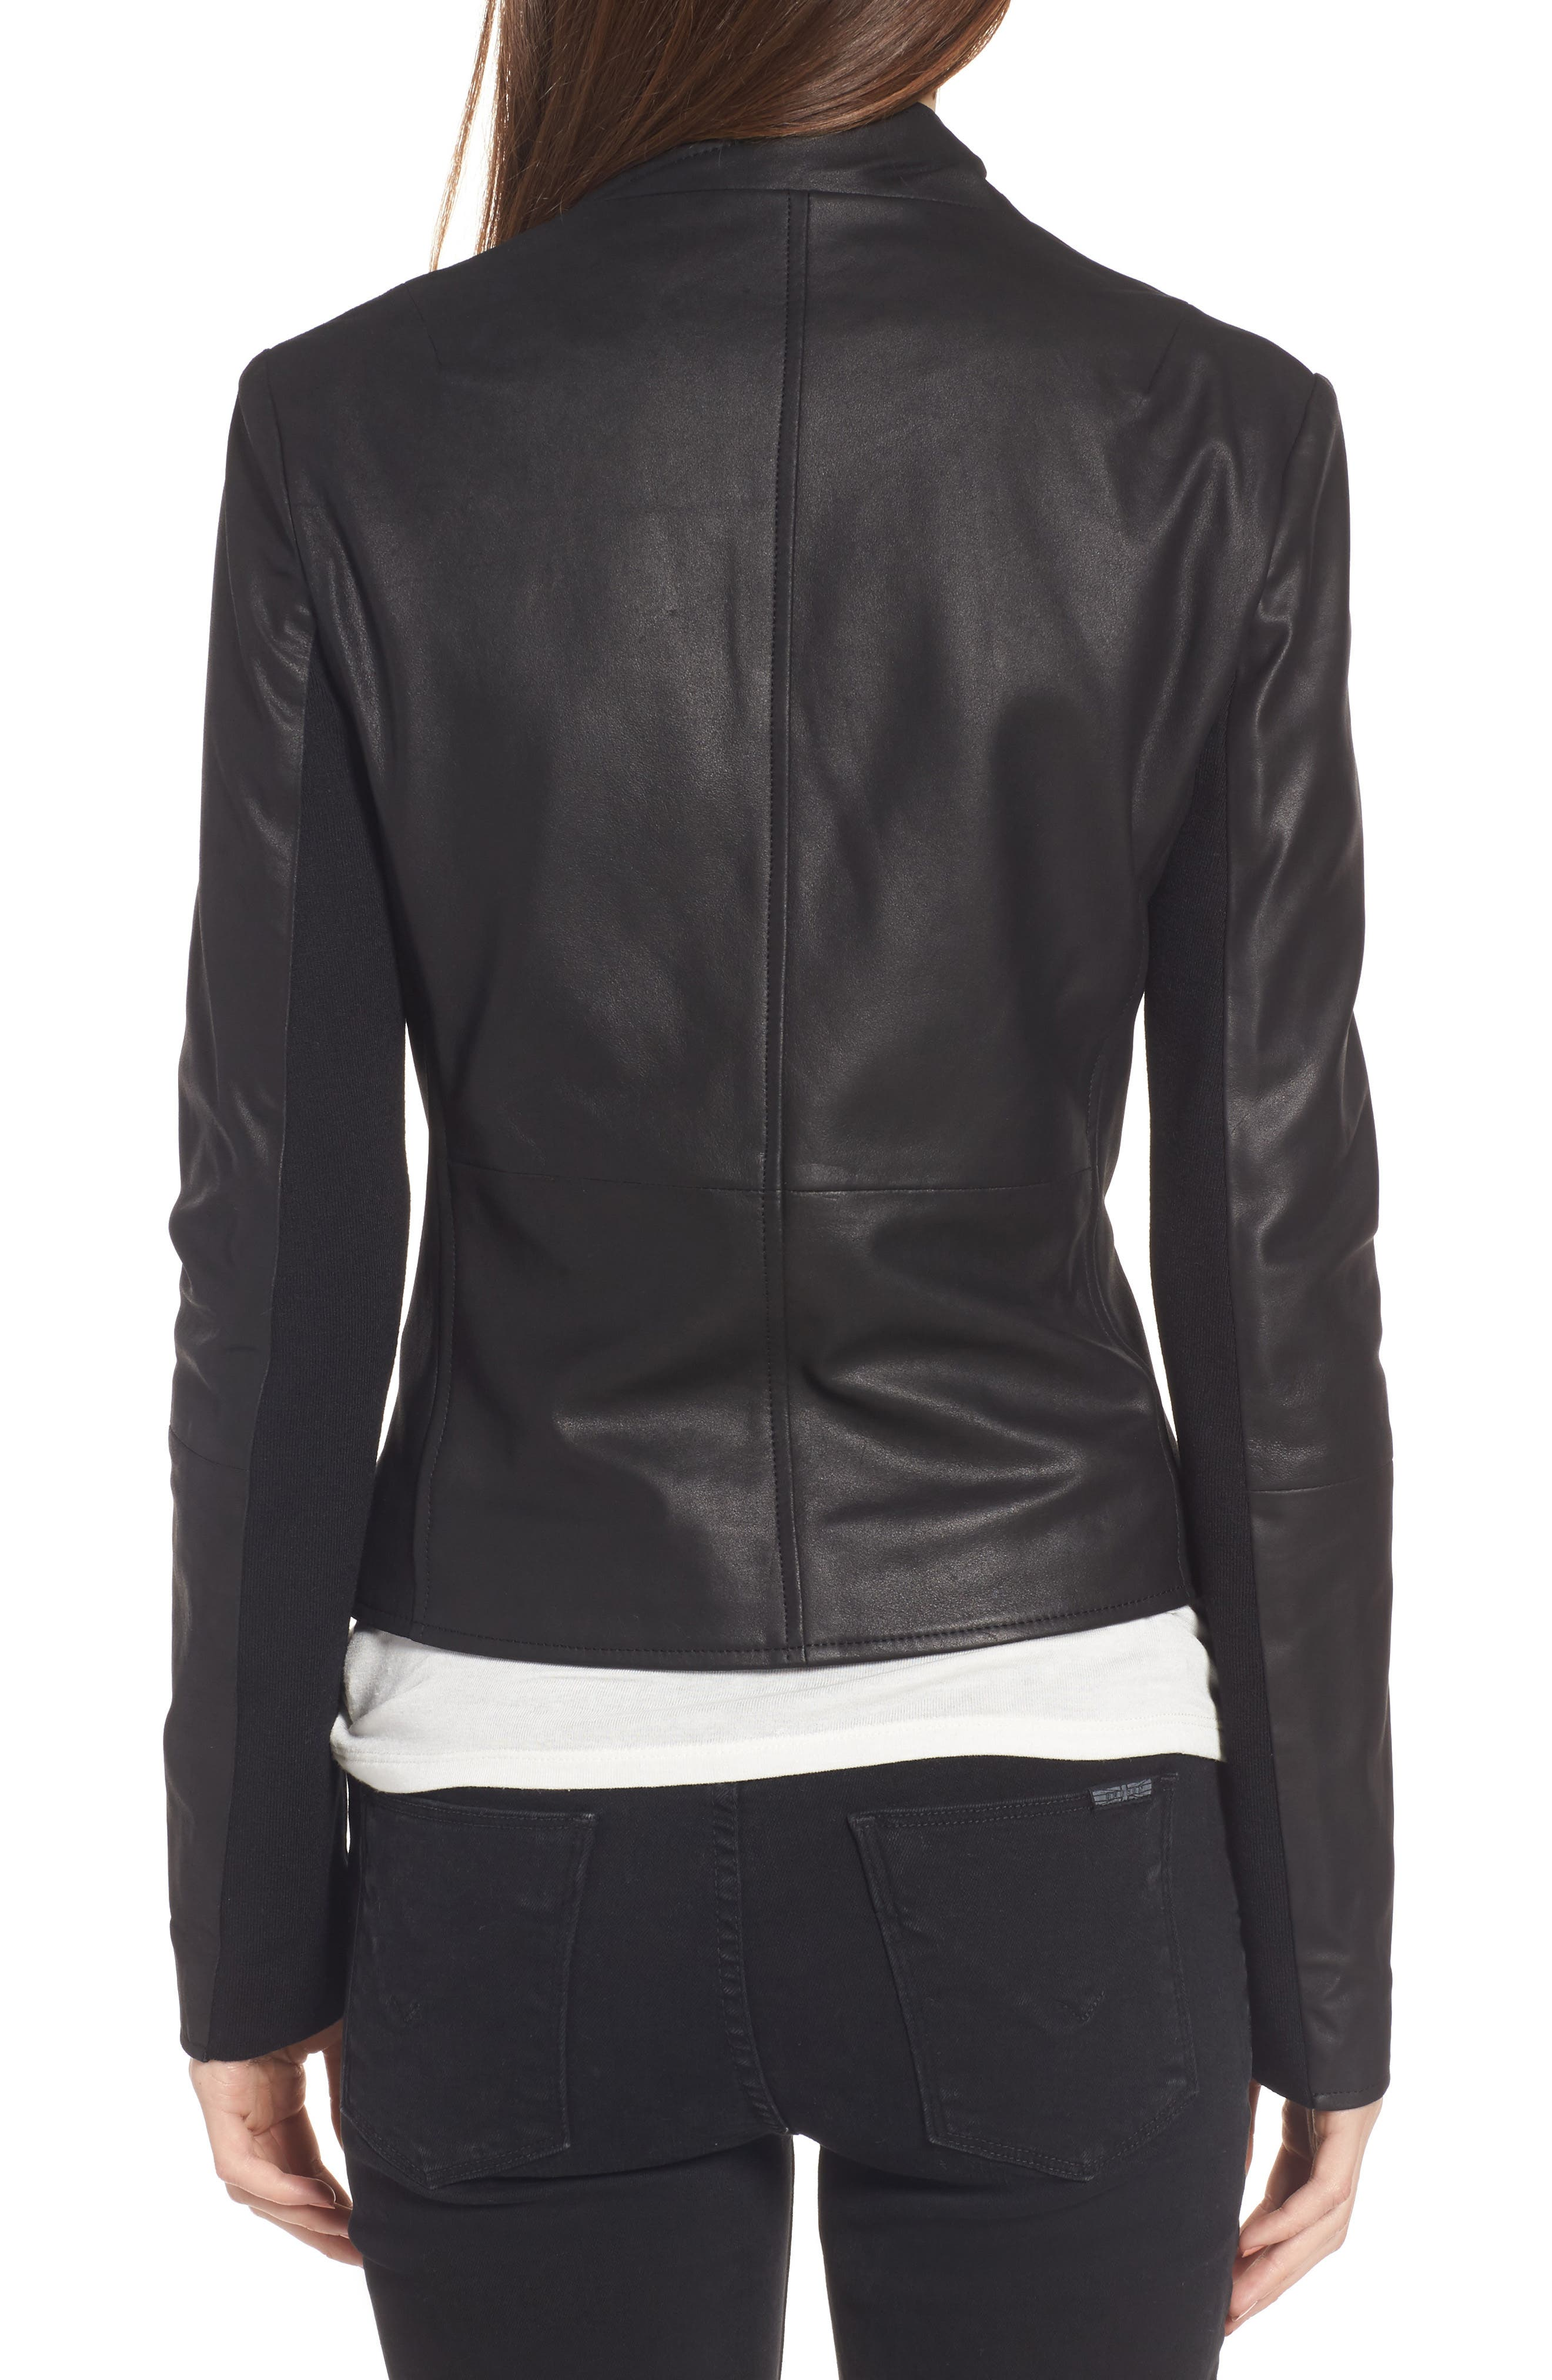 Cascade Leather Jacket,                             Alternate thumbnail 2, color,                             001